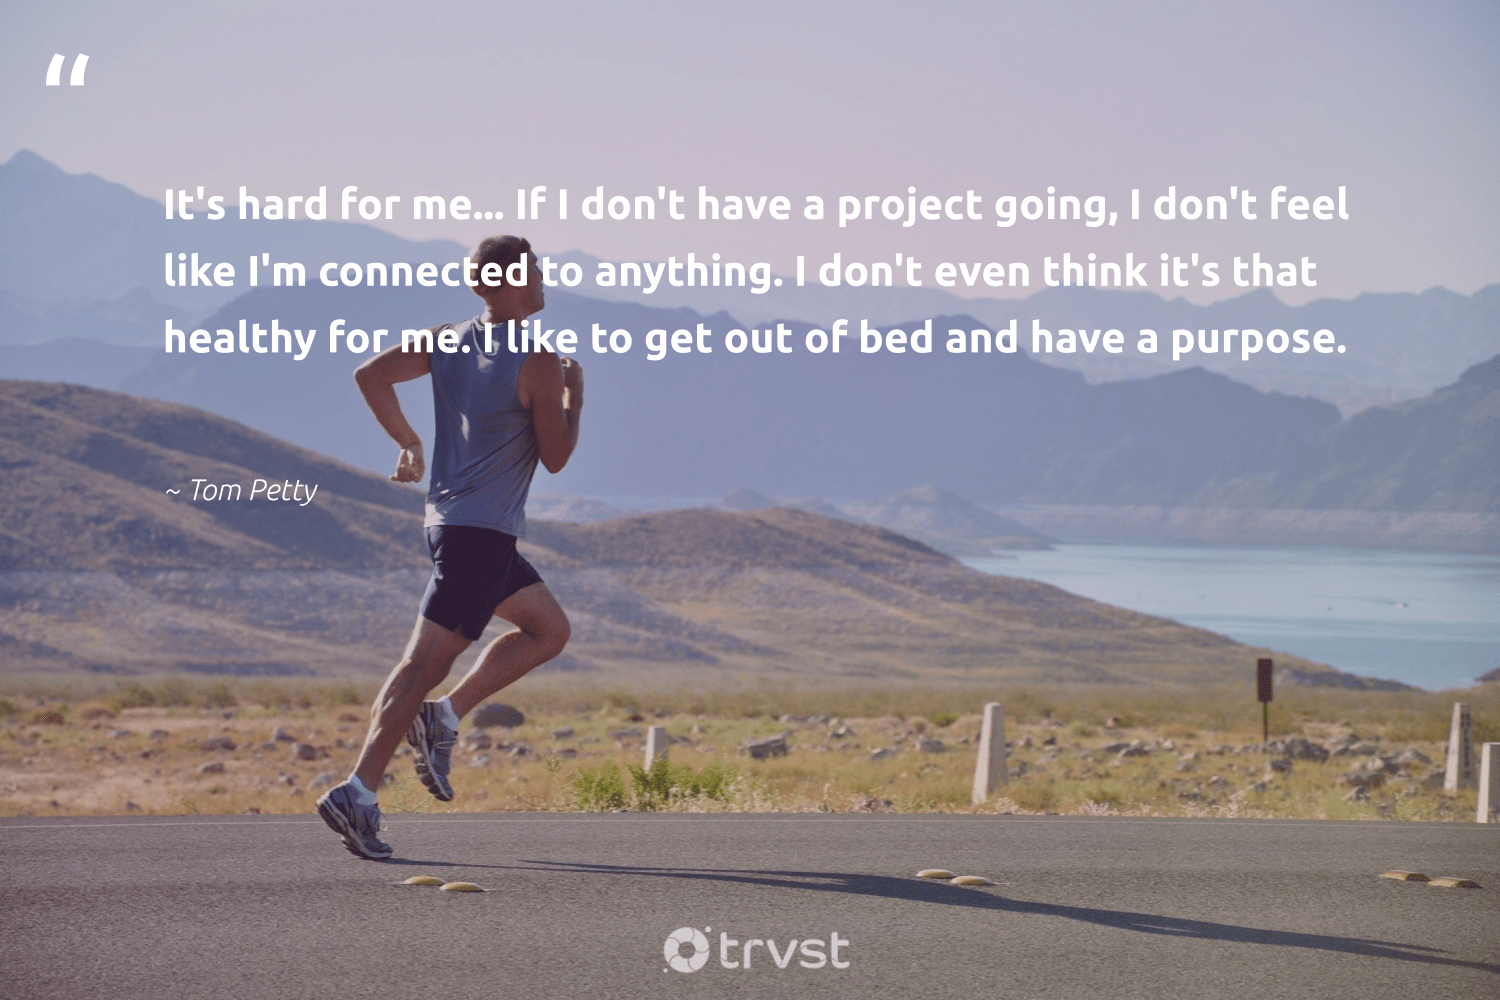 """It's hard for me... If I don't have a project going, I don't feel like I'm connected to anything. I don't even think it's that healthy for me. I like to get out of bed and have a purpose.""  - Tom Petty #trvst #quotes #wellbeing #healthy #purpose #wellness #nevergiveup #togetherwecan #dosomething #healthyliving #changemakers #begreat"